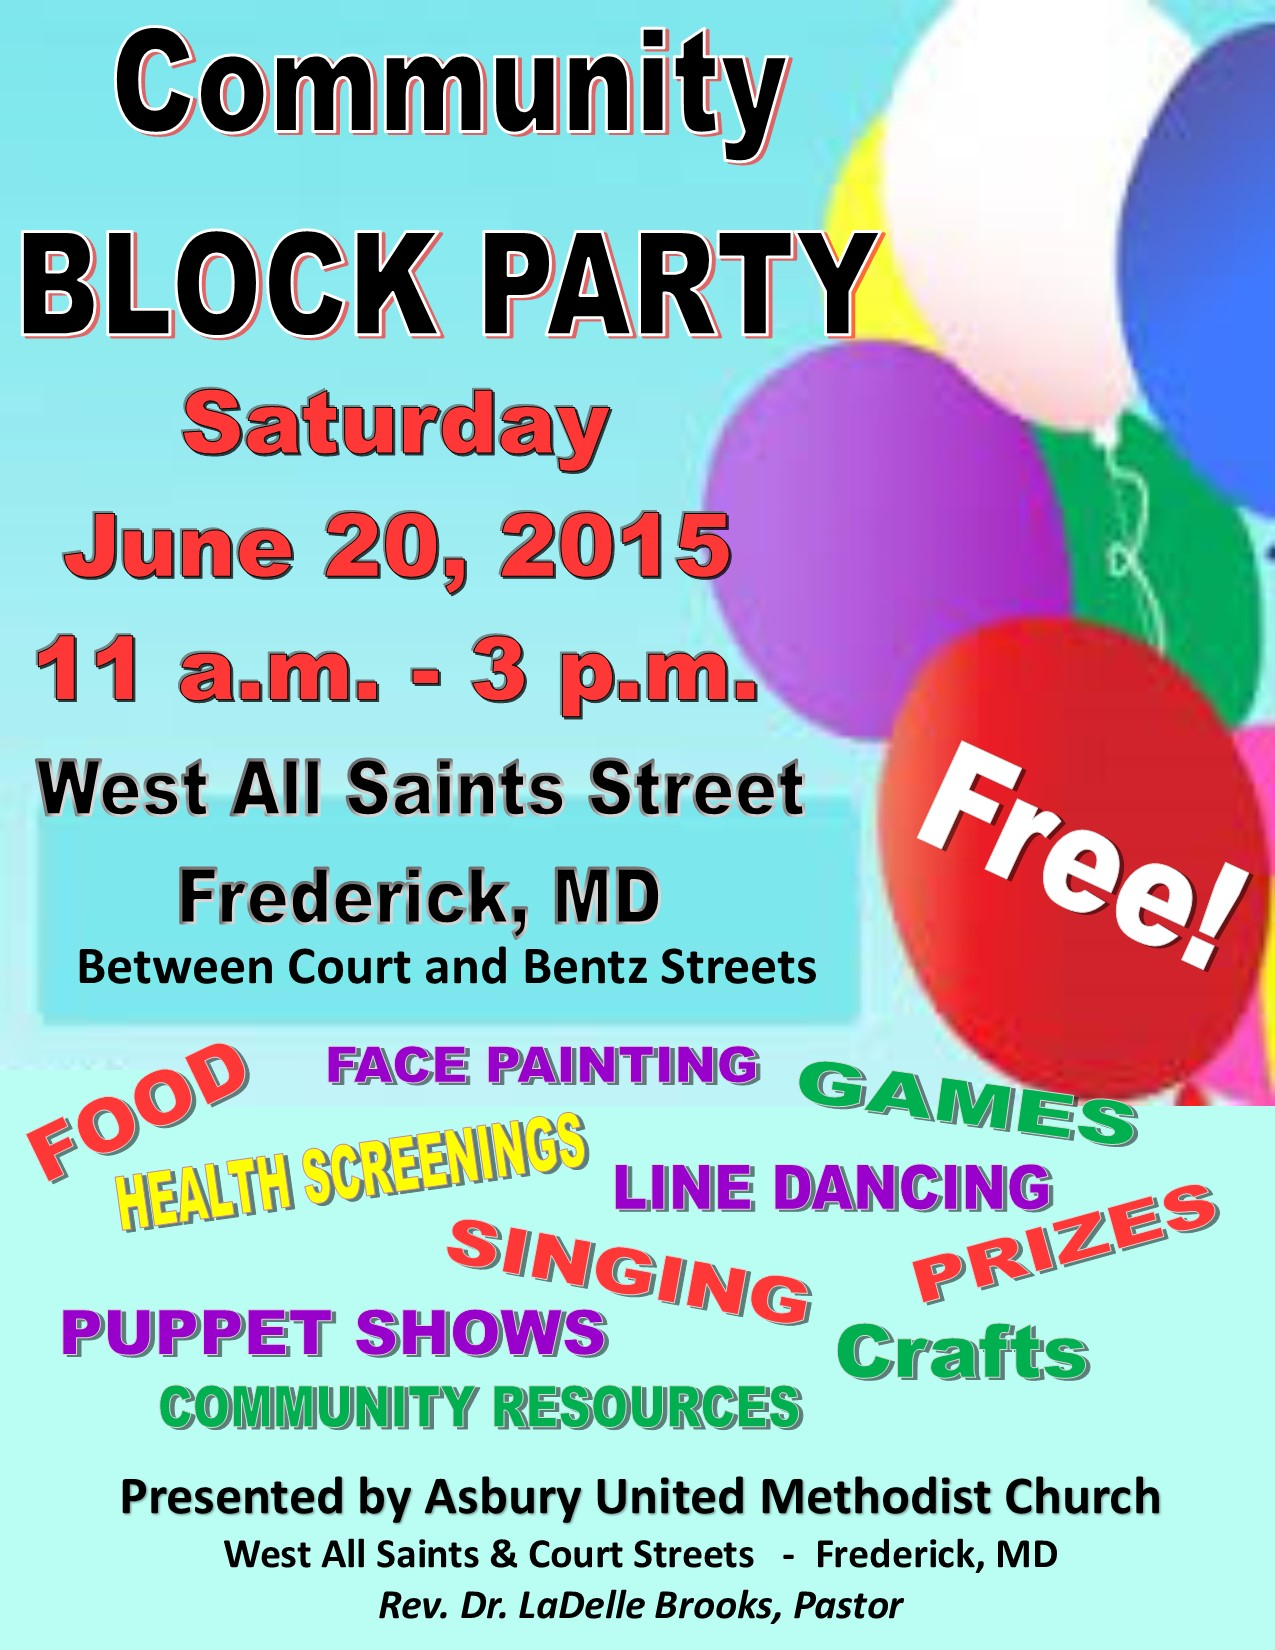 asbury united methodist church community block party june 20 2015